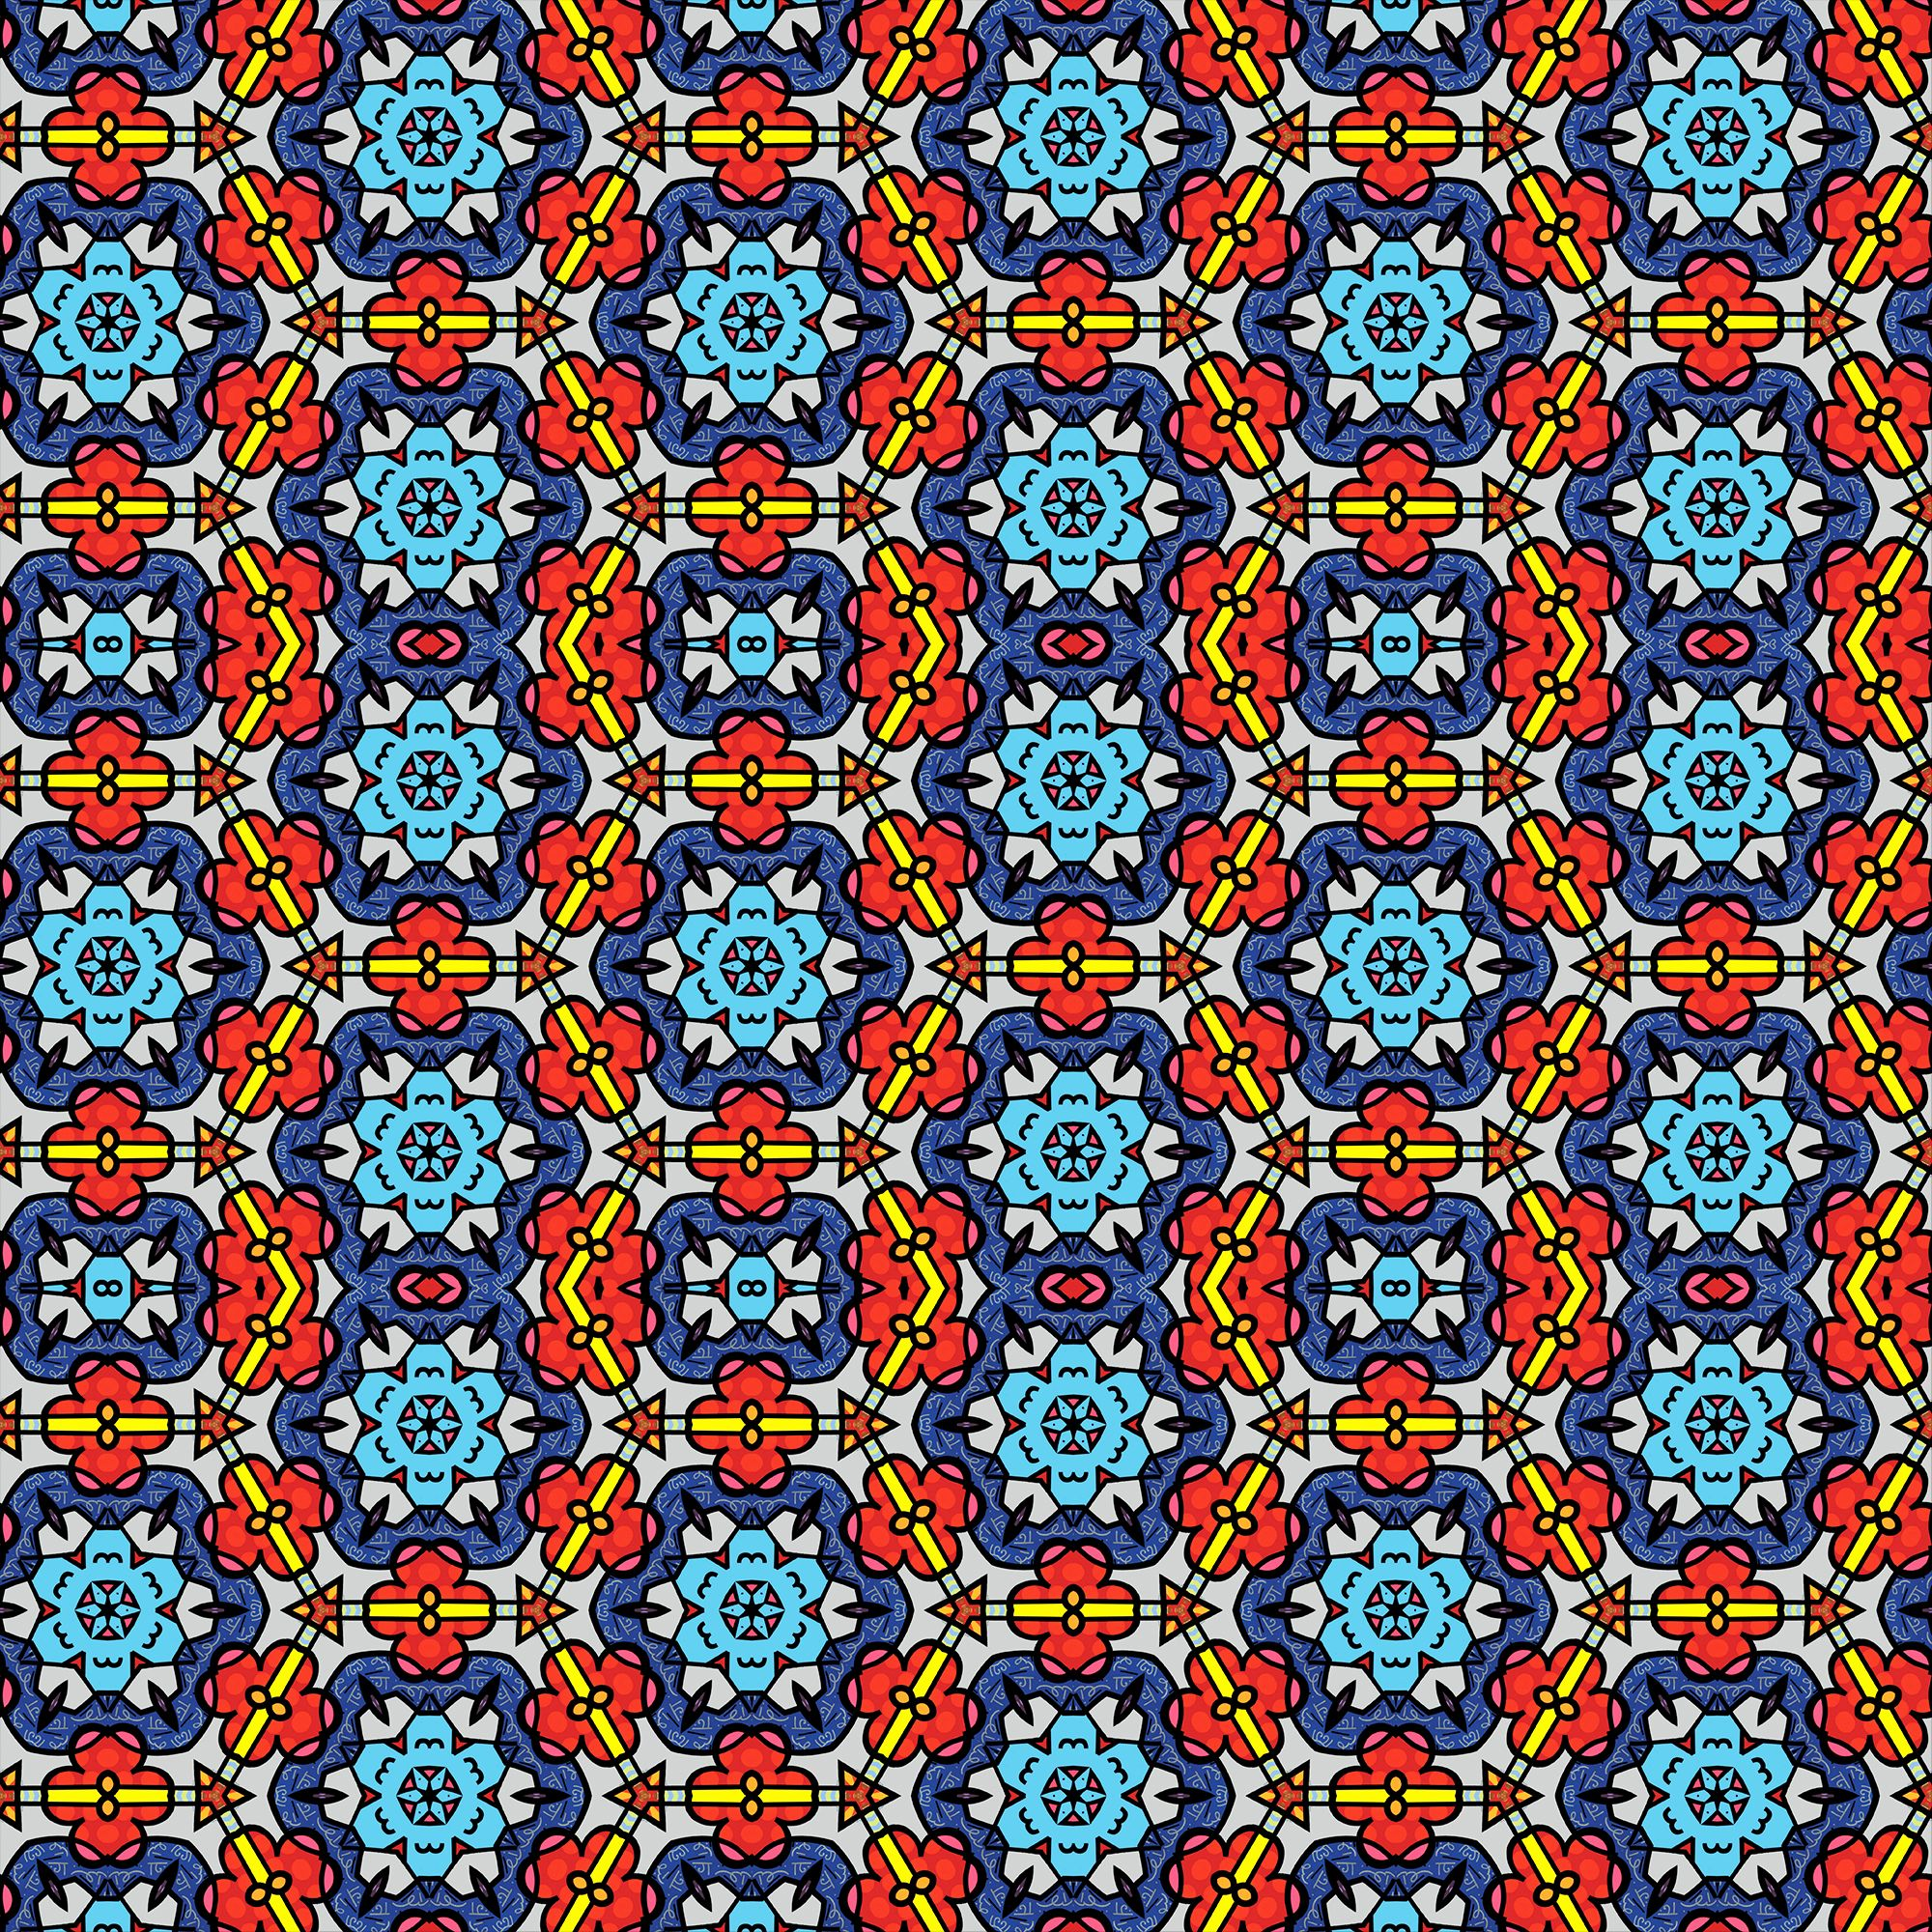 130195 download wallpaper Textures, Texture, Kaleidoscope, Forms, Form, Multicolored, Motley, Patterns screensavers and pictures for free